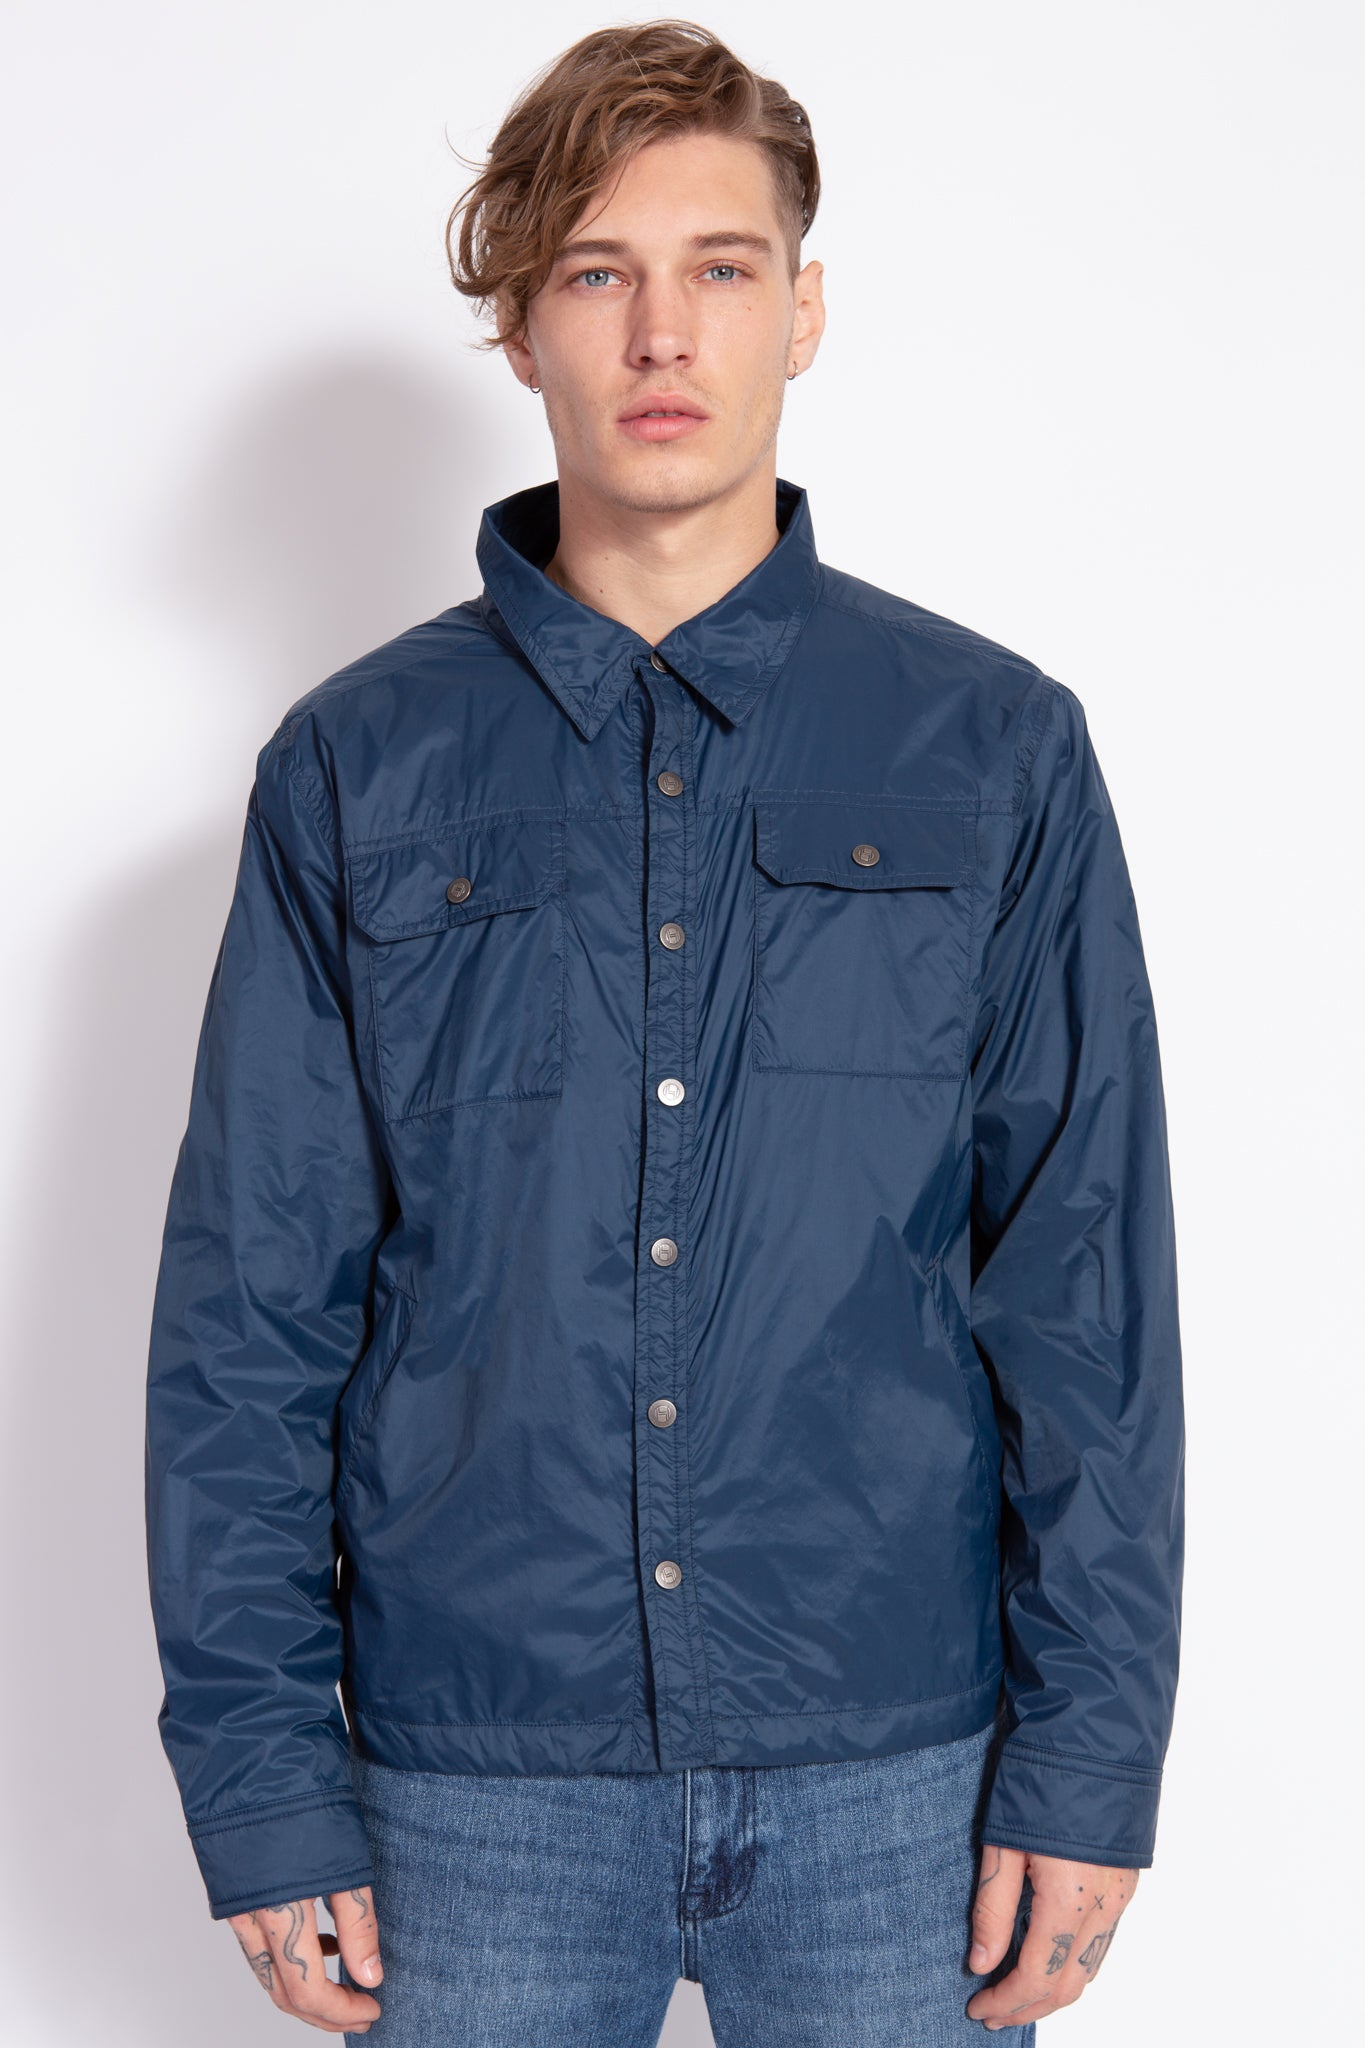 Slim Fit Trucker Jacket